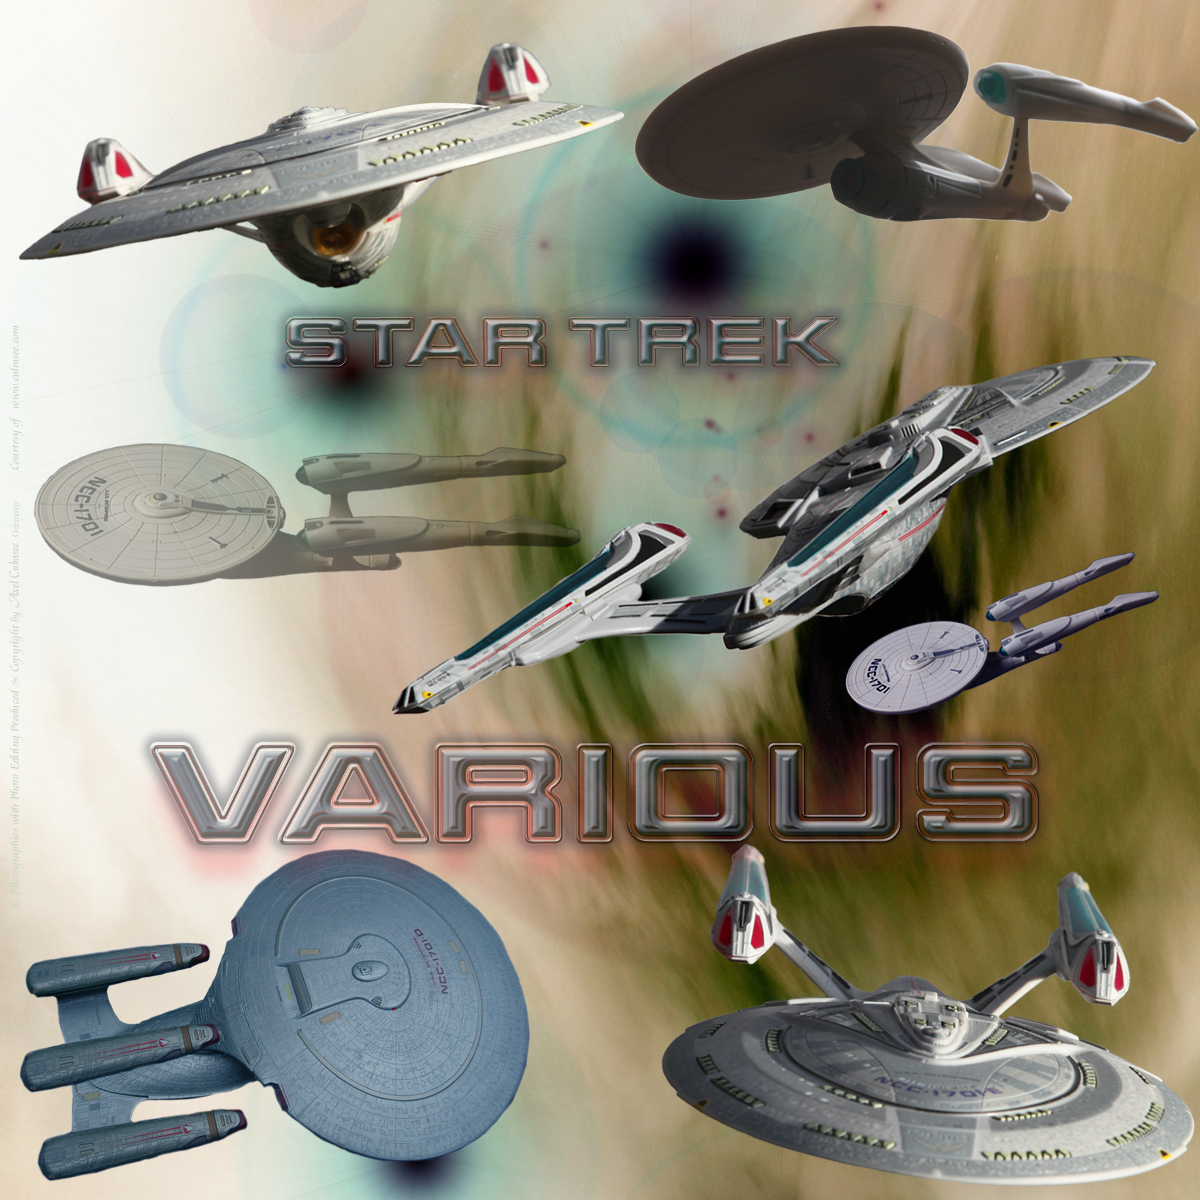 Star Trek various